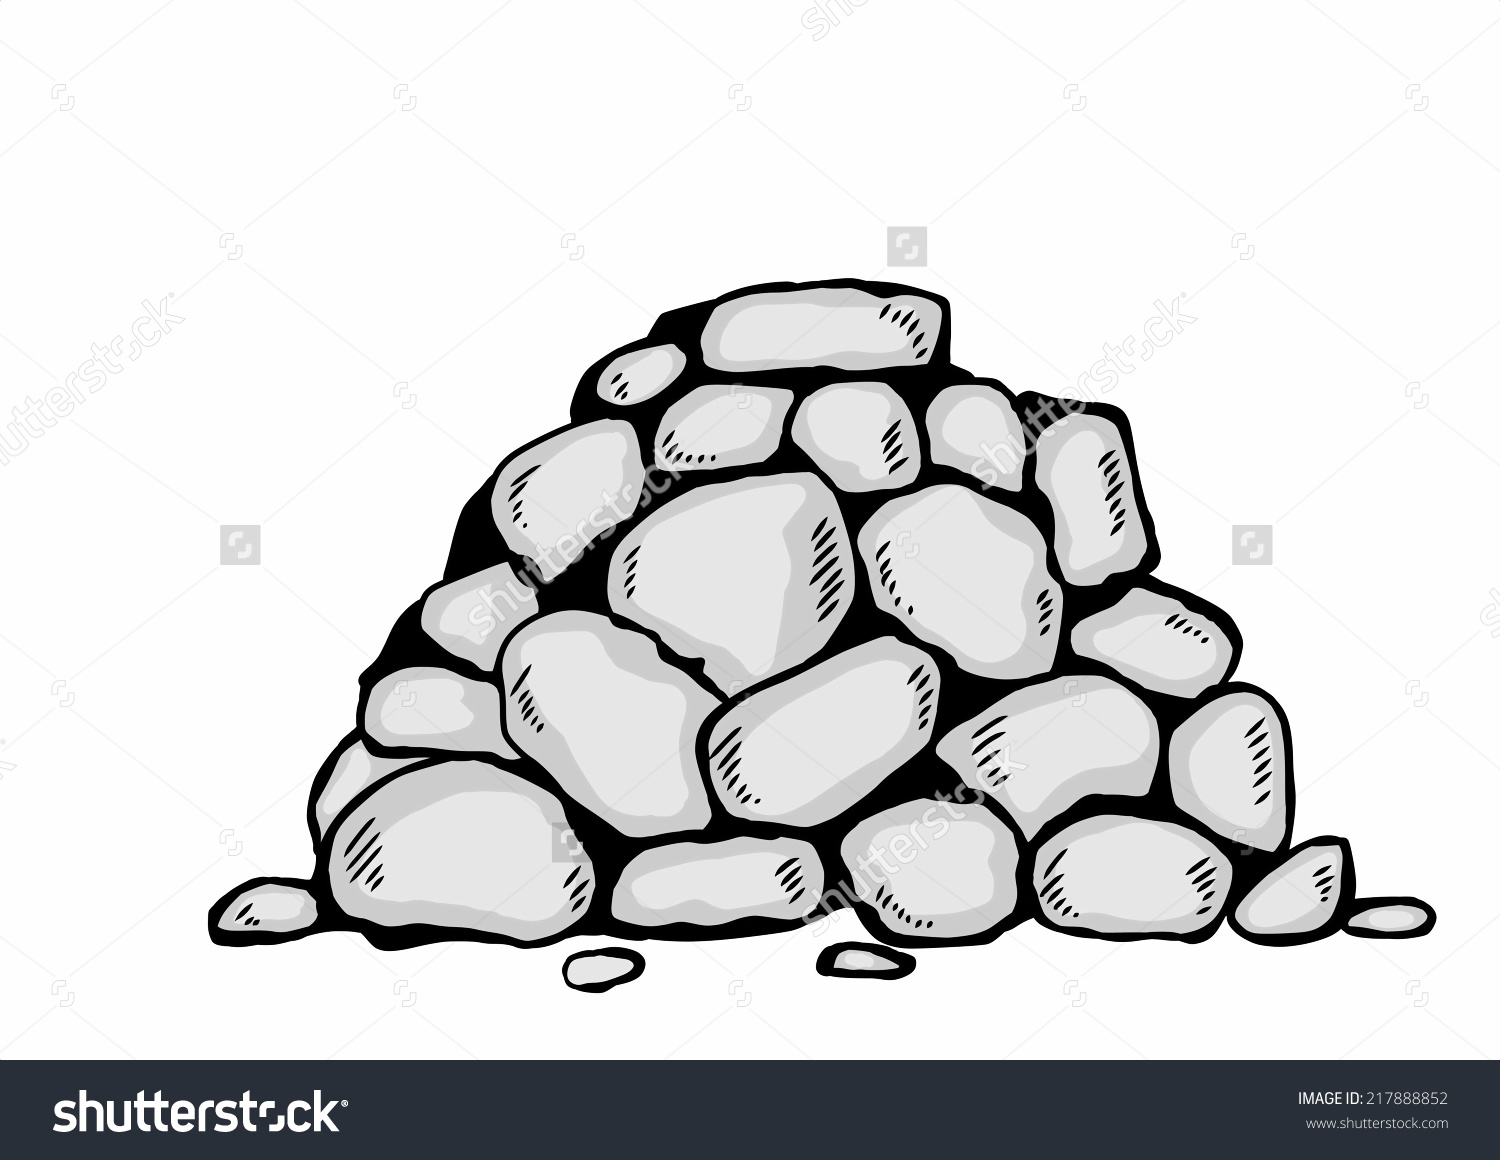 Cartoon Pile Stones Stock Illustration 217888852.